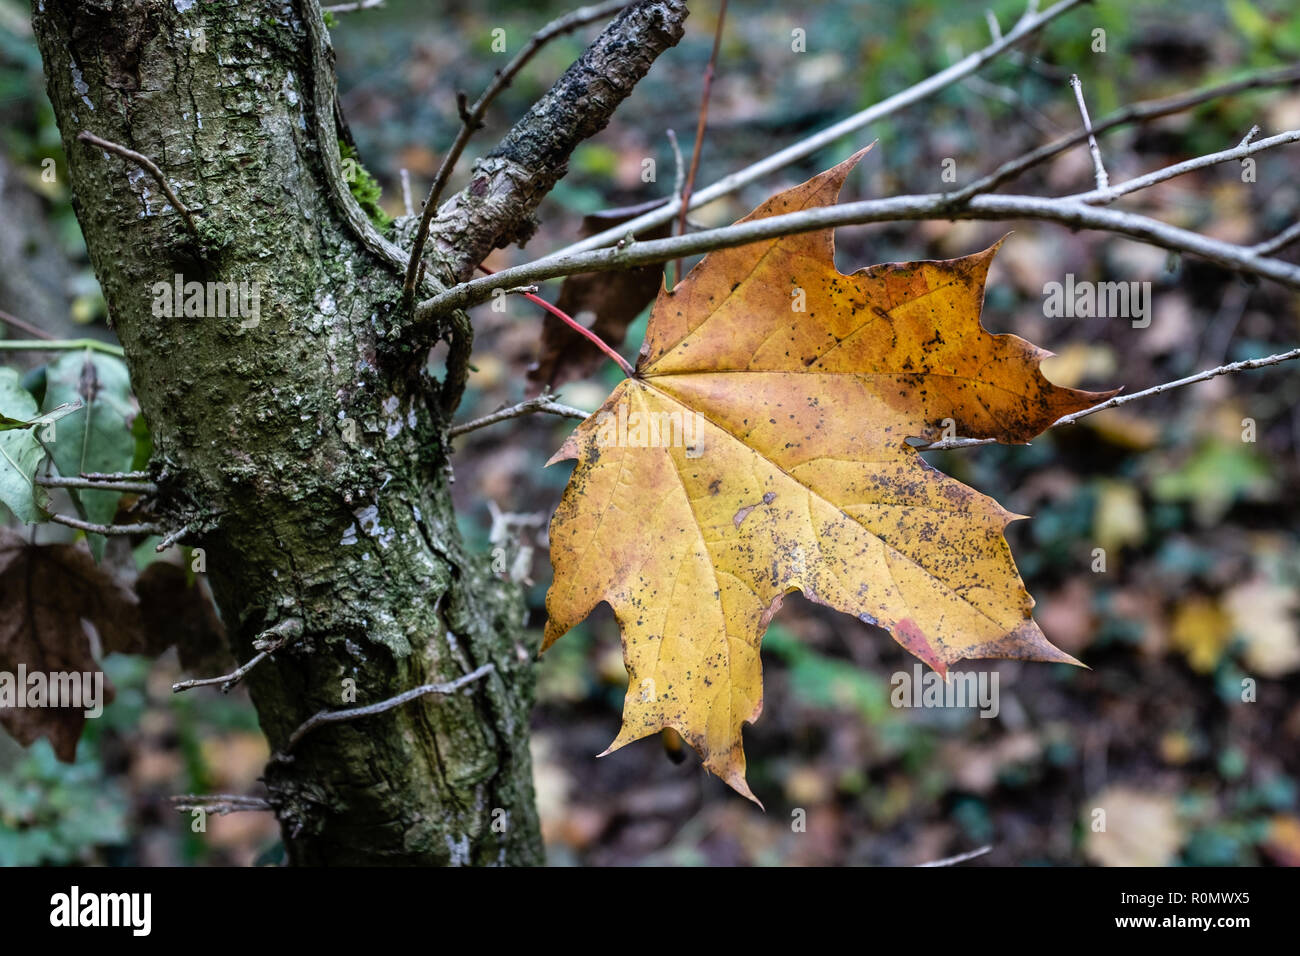 Dead leaf of yellow color - Stock Image